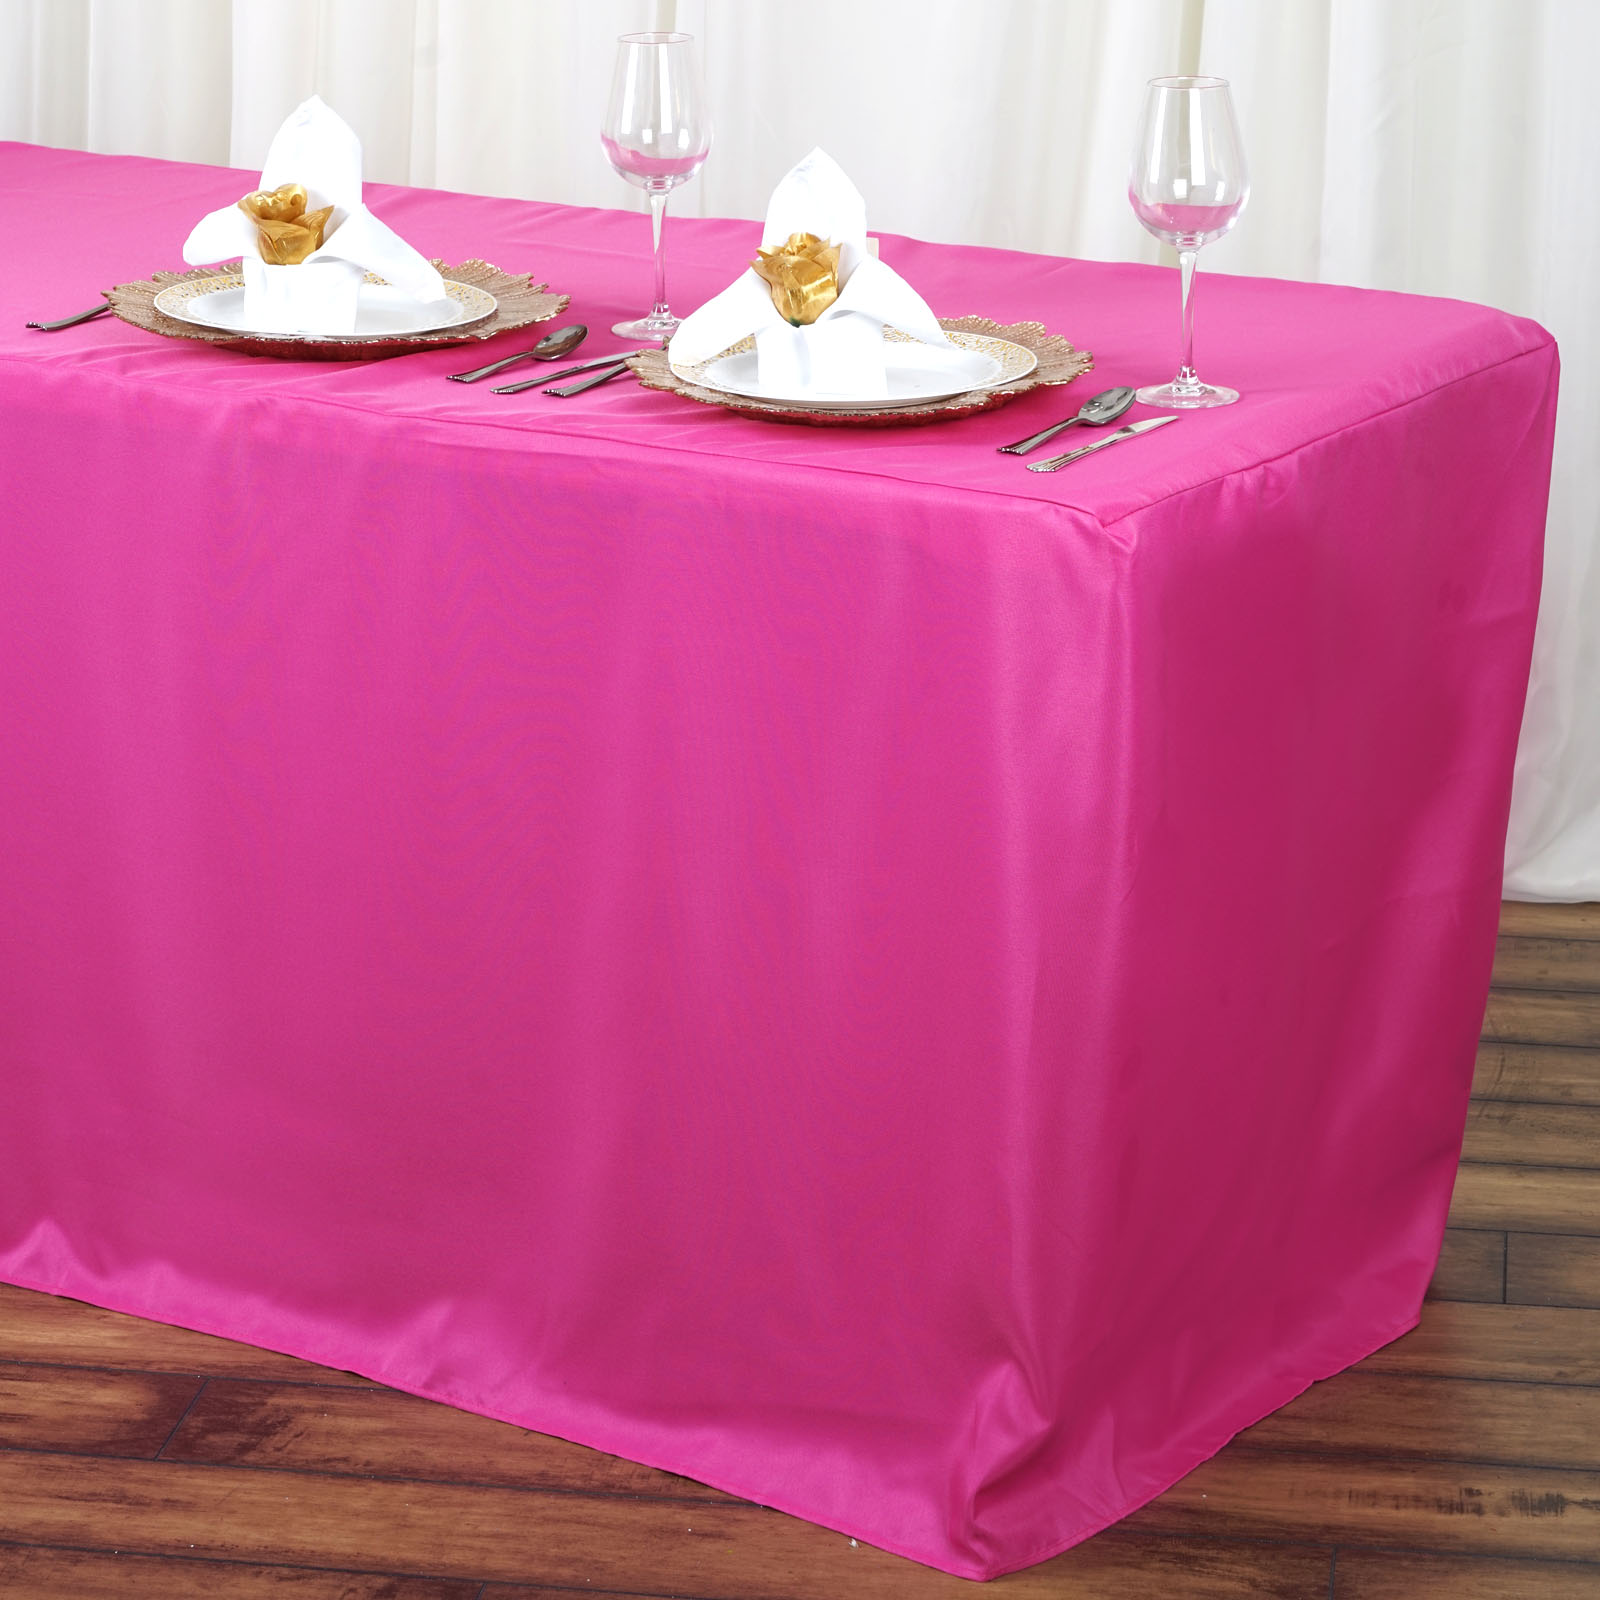 BalsaCircle 6 feet Fitted Polyester Tablecloth Table Linens Wedding Party